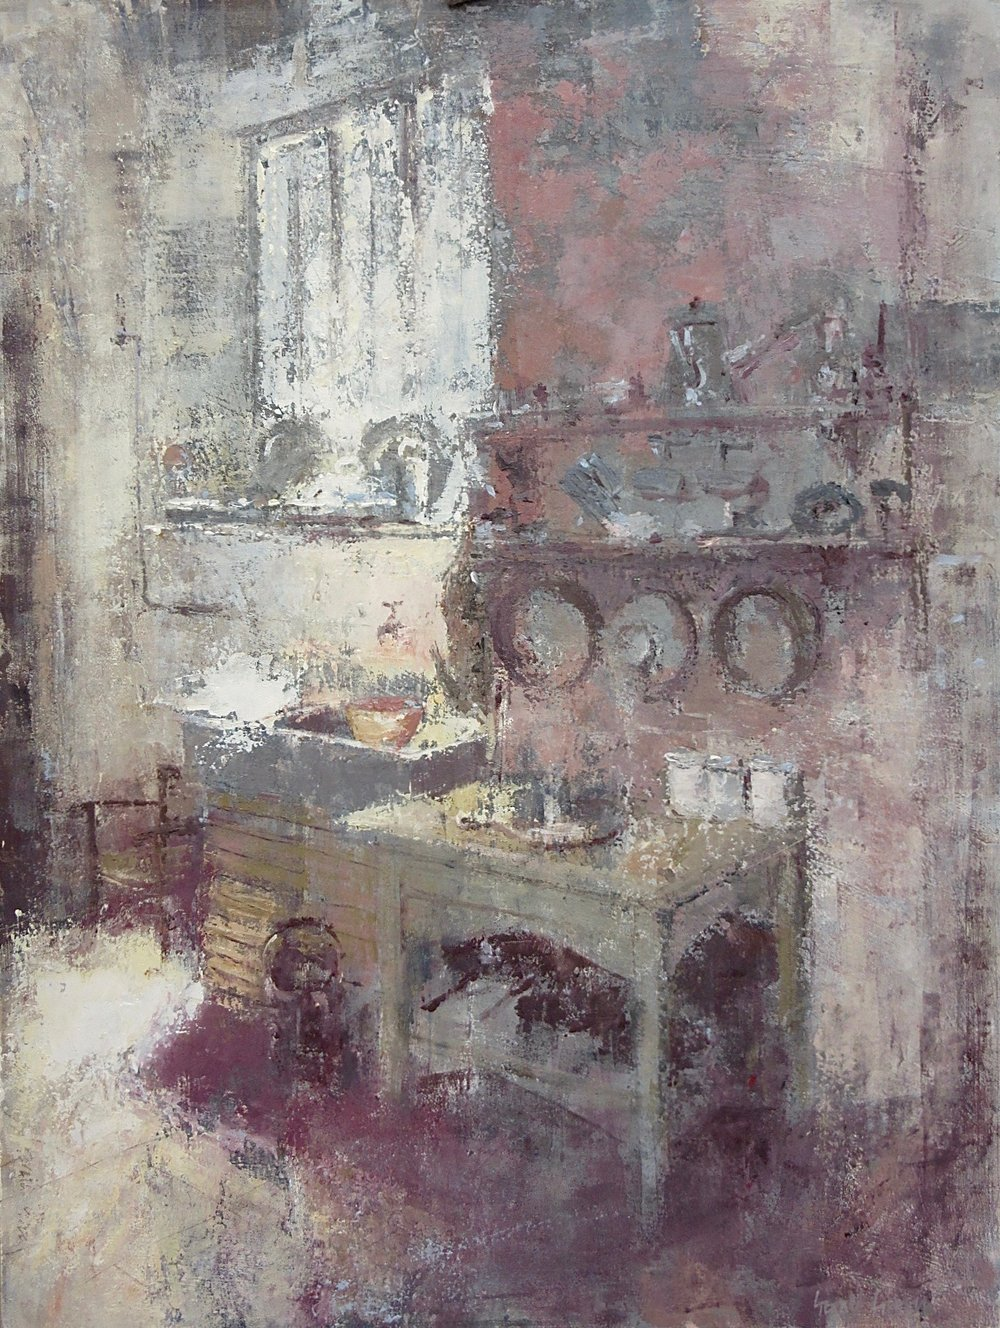 Old Kitchen: 24 x18 in: £2150    (currently at The Wykeham Gallery Stockbridge)